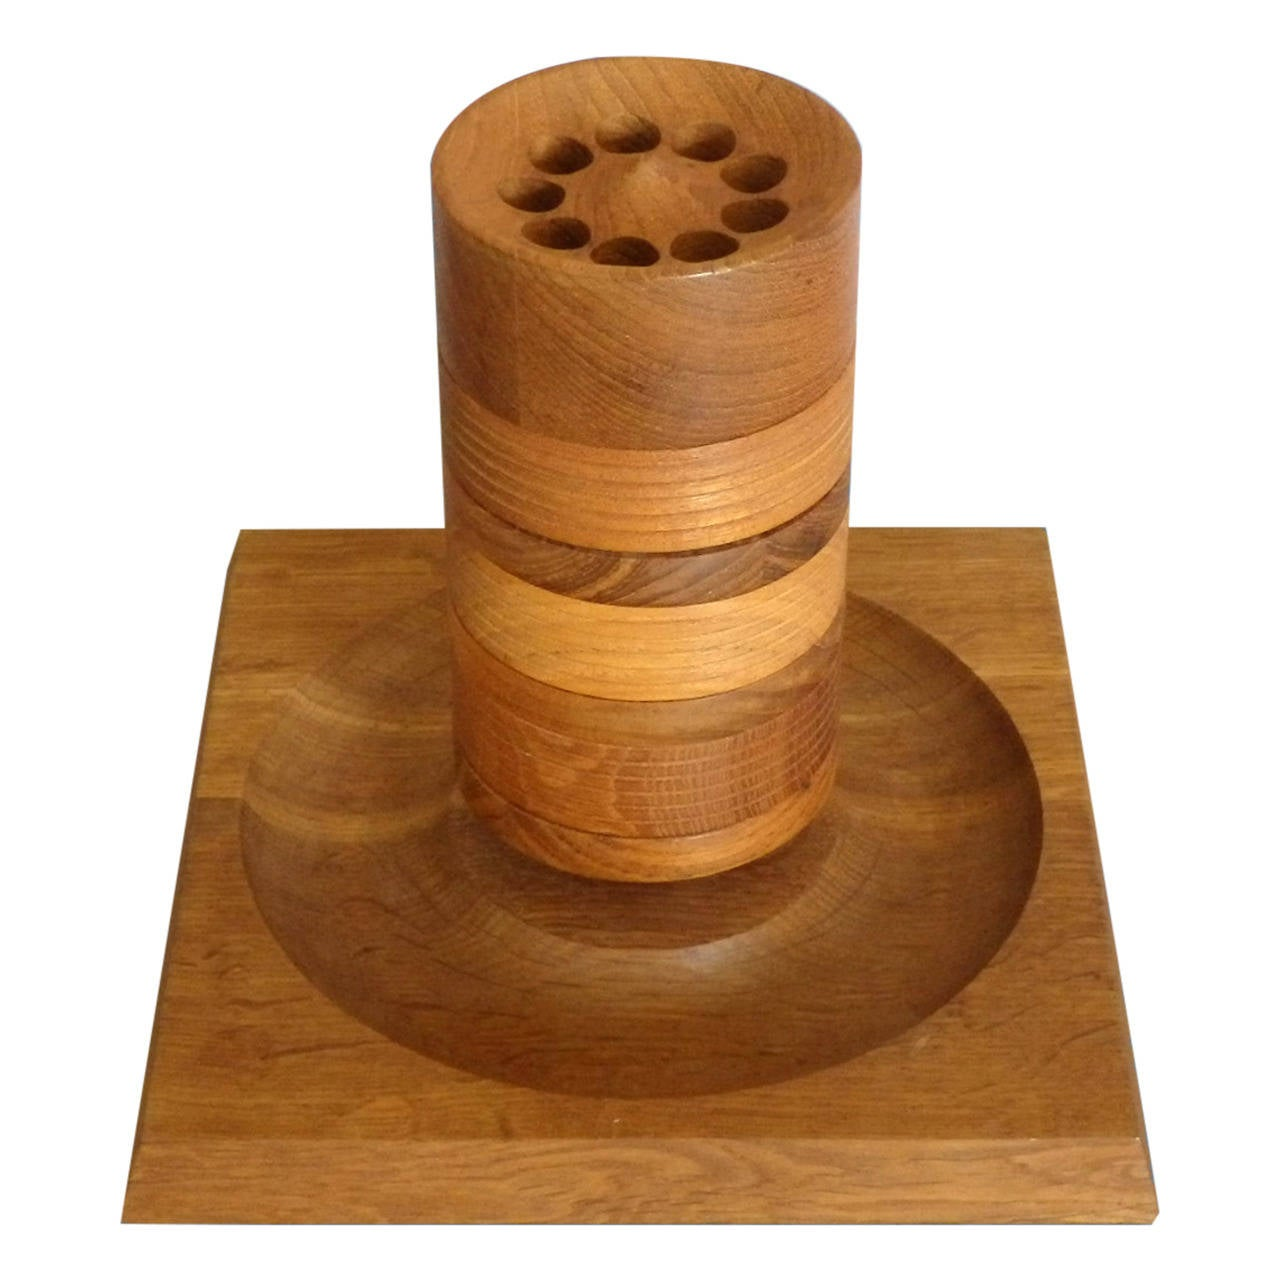 Turned Wood Danish Teak Tower Game by Skjode Skjern